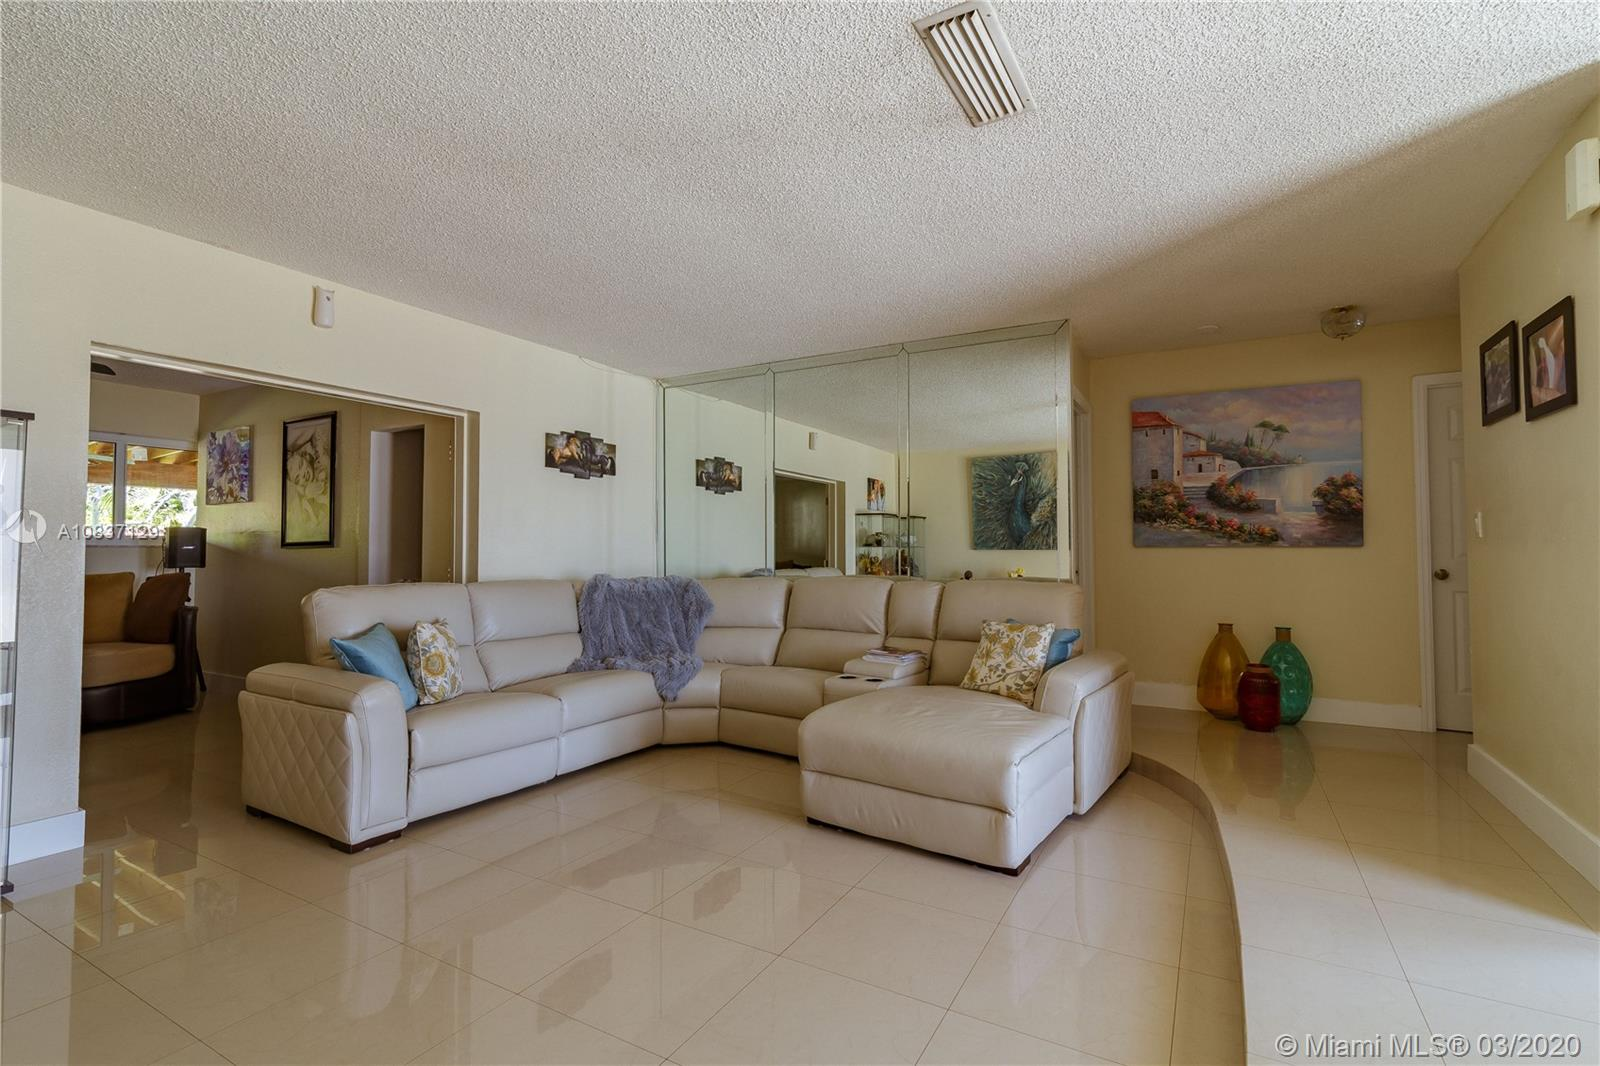 10851 SW 171st St, Miami, Florida 33157, 5 Bedrooms Bedrooms, ,4 BathroomsBathrooms,Residential,For Sale,10851 SW 171st St,A10837129